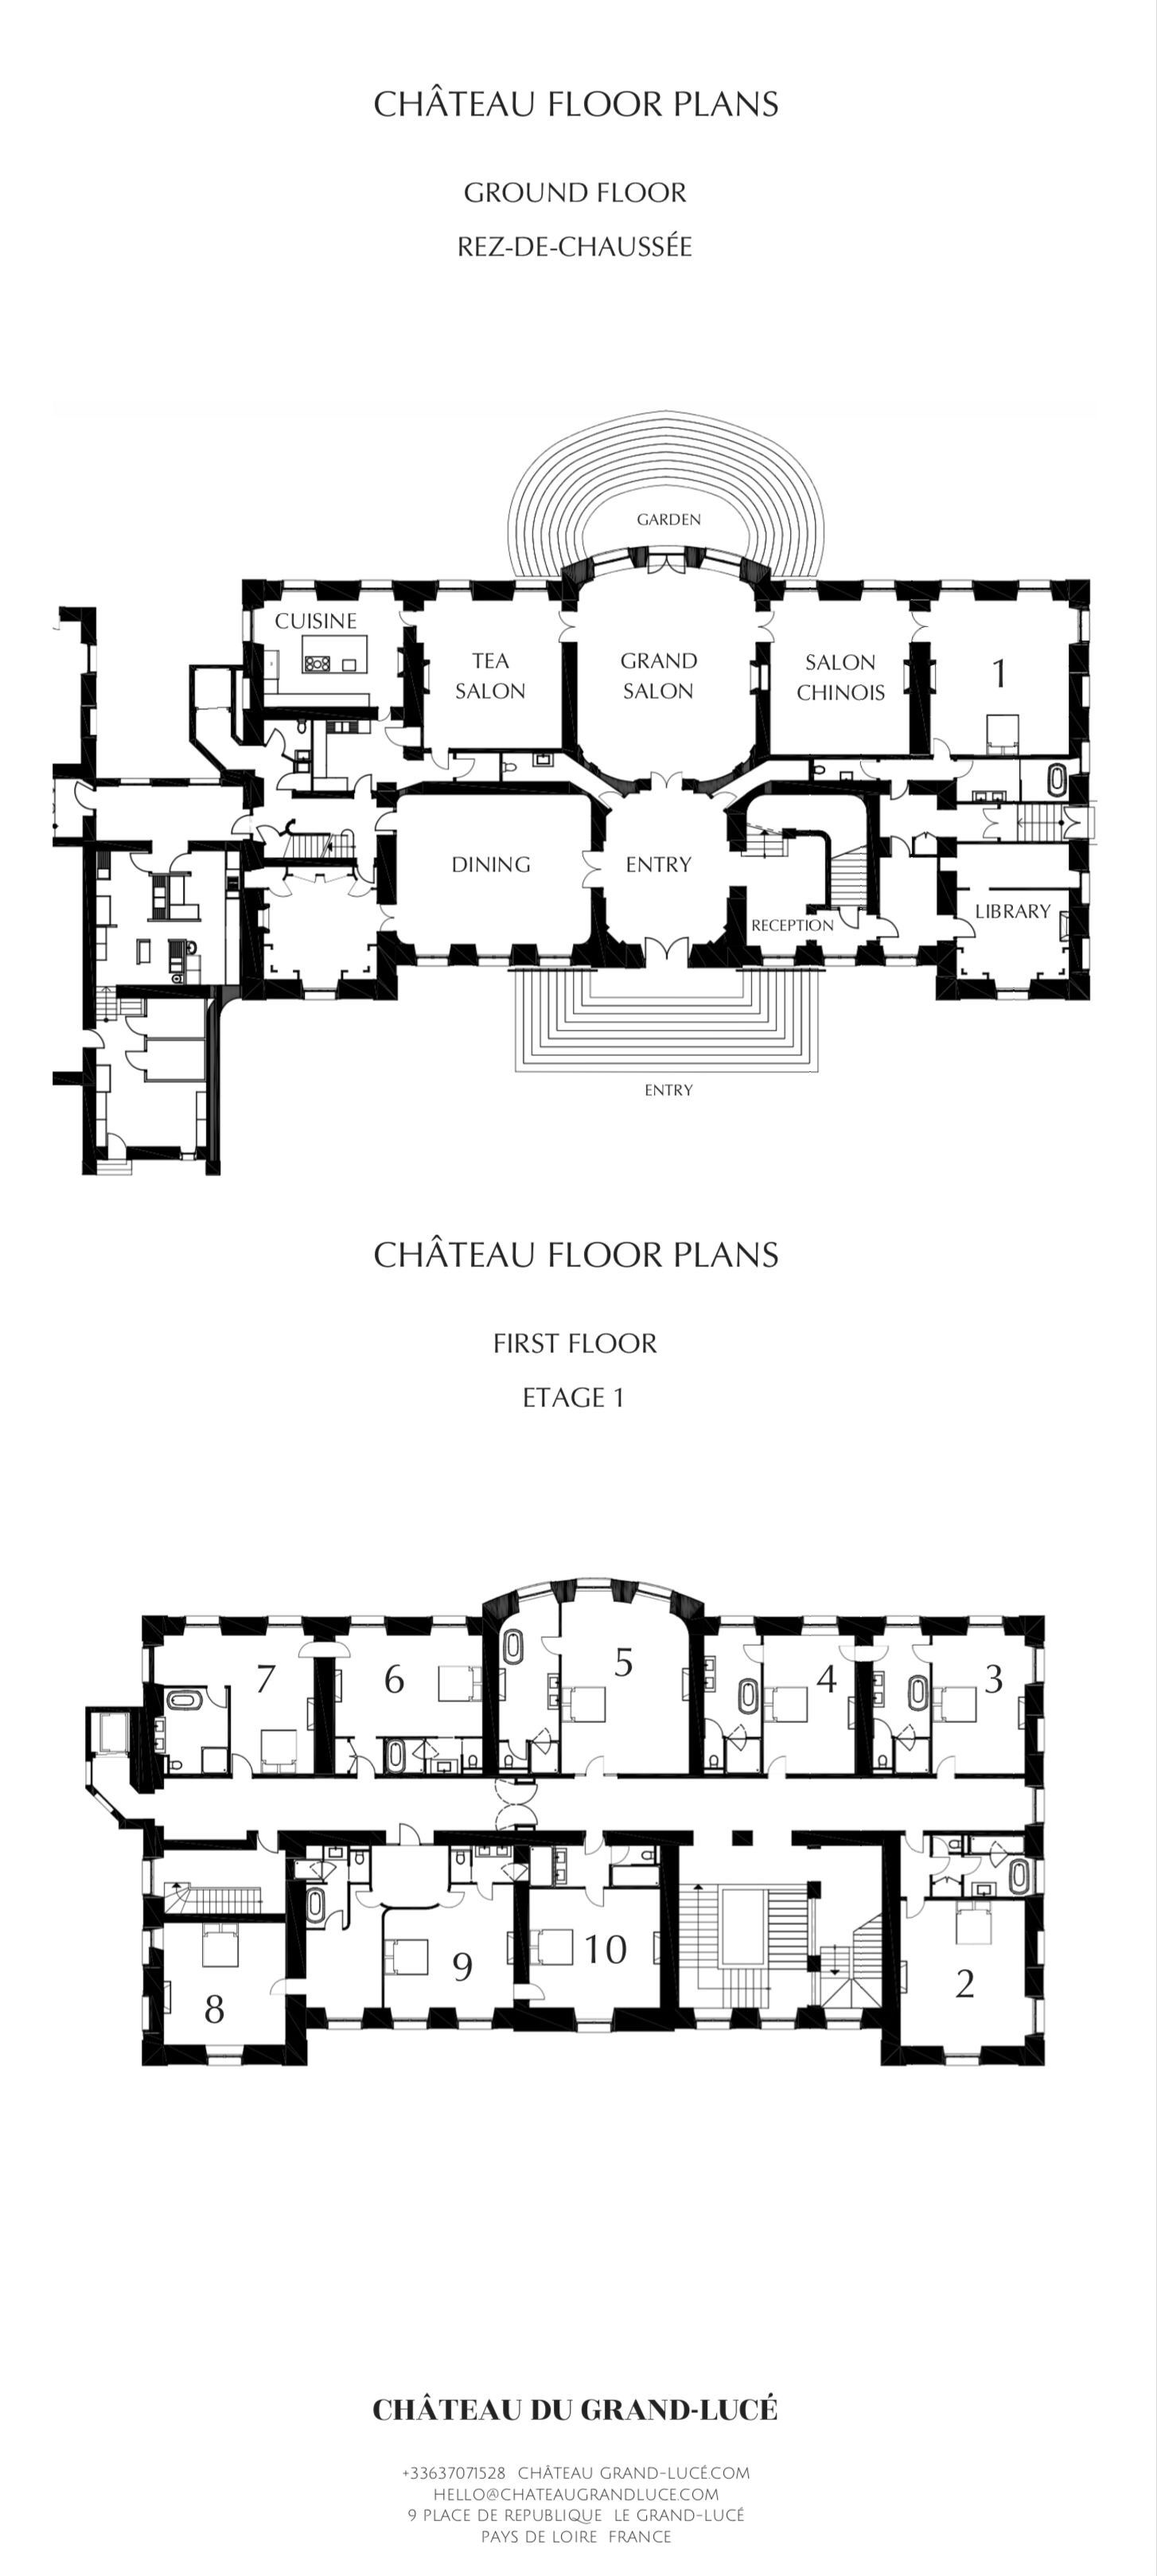 Hotel Chateau Du Grand Luce Hotel Floor Plan Mansion Floor Plan Country House Floor Plan